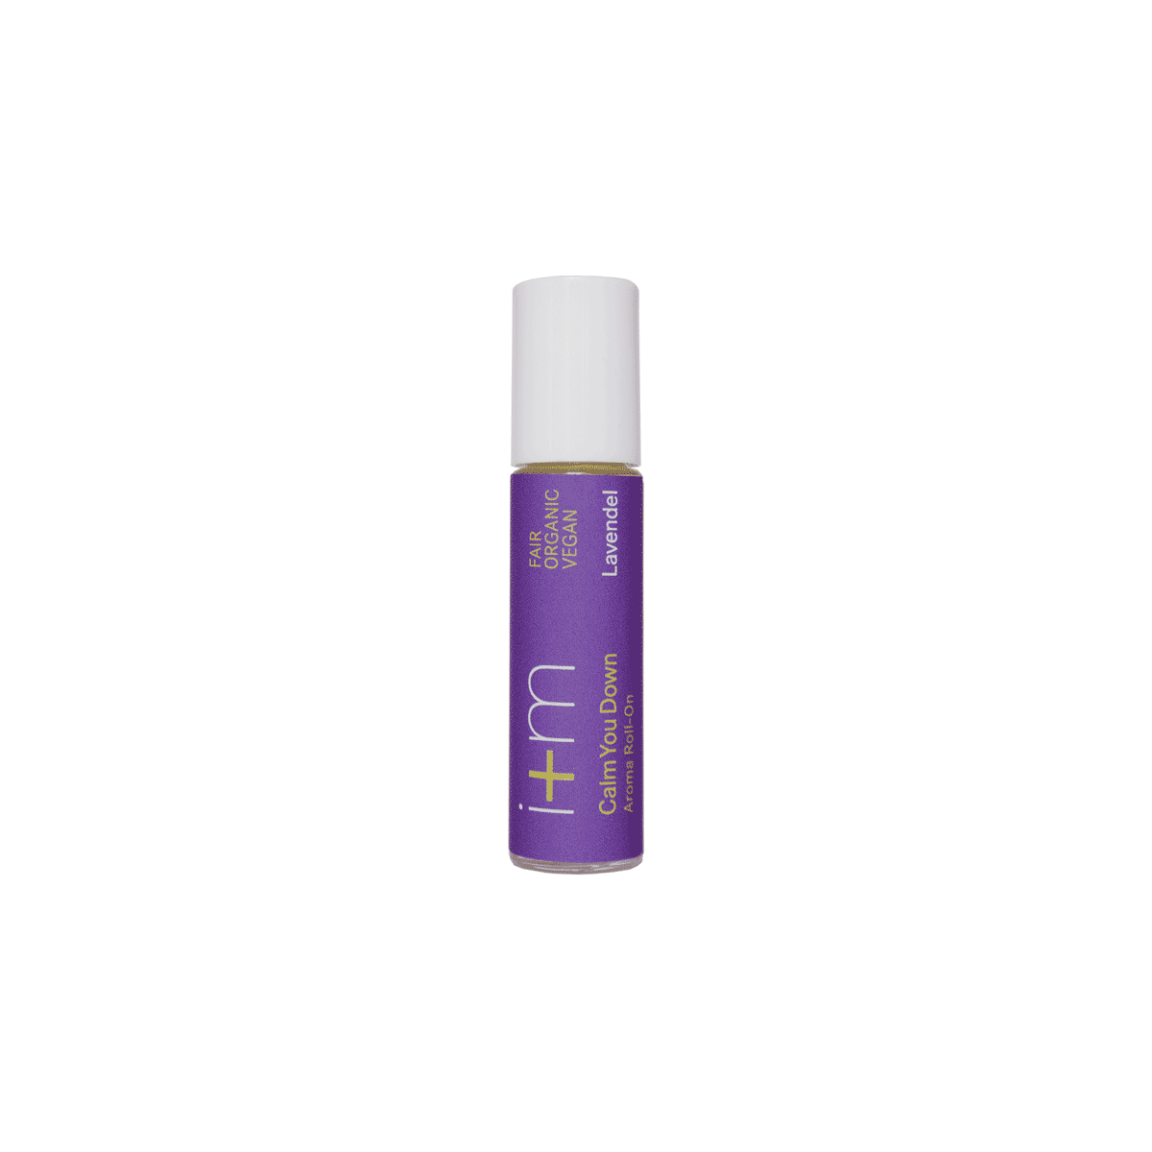 Aroma Roll-On Calm You Down von i+m Naturkosmetik - fair bio vegan.